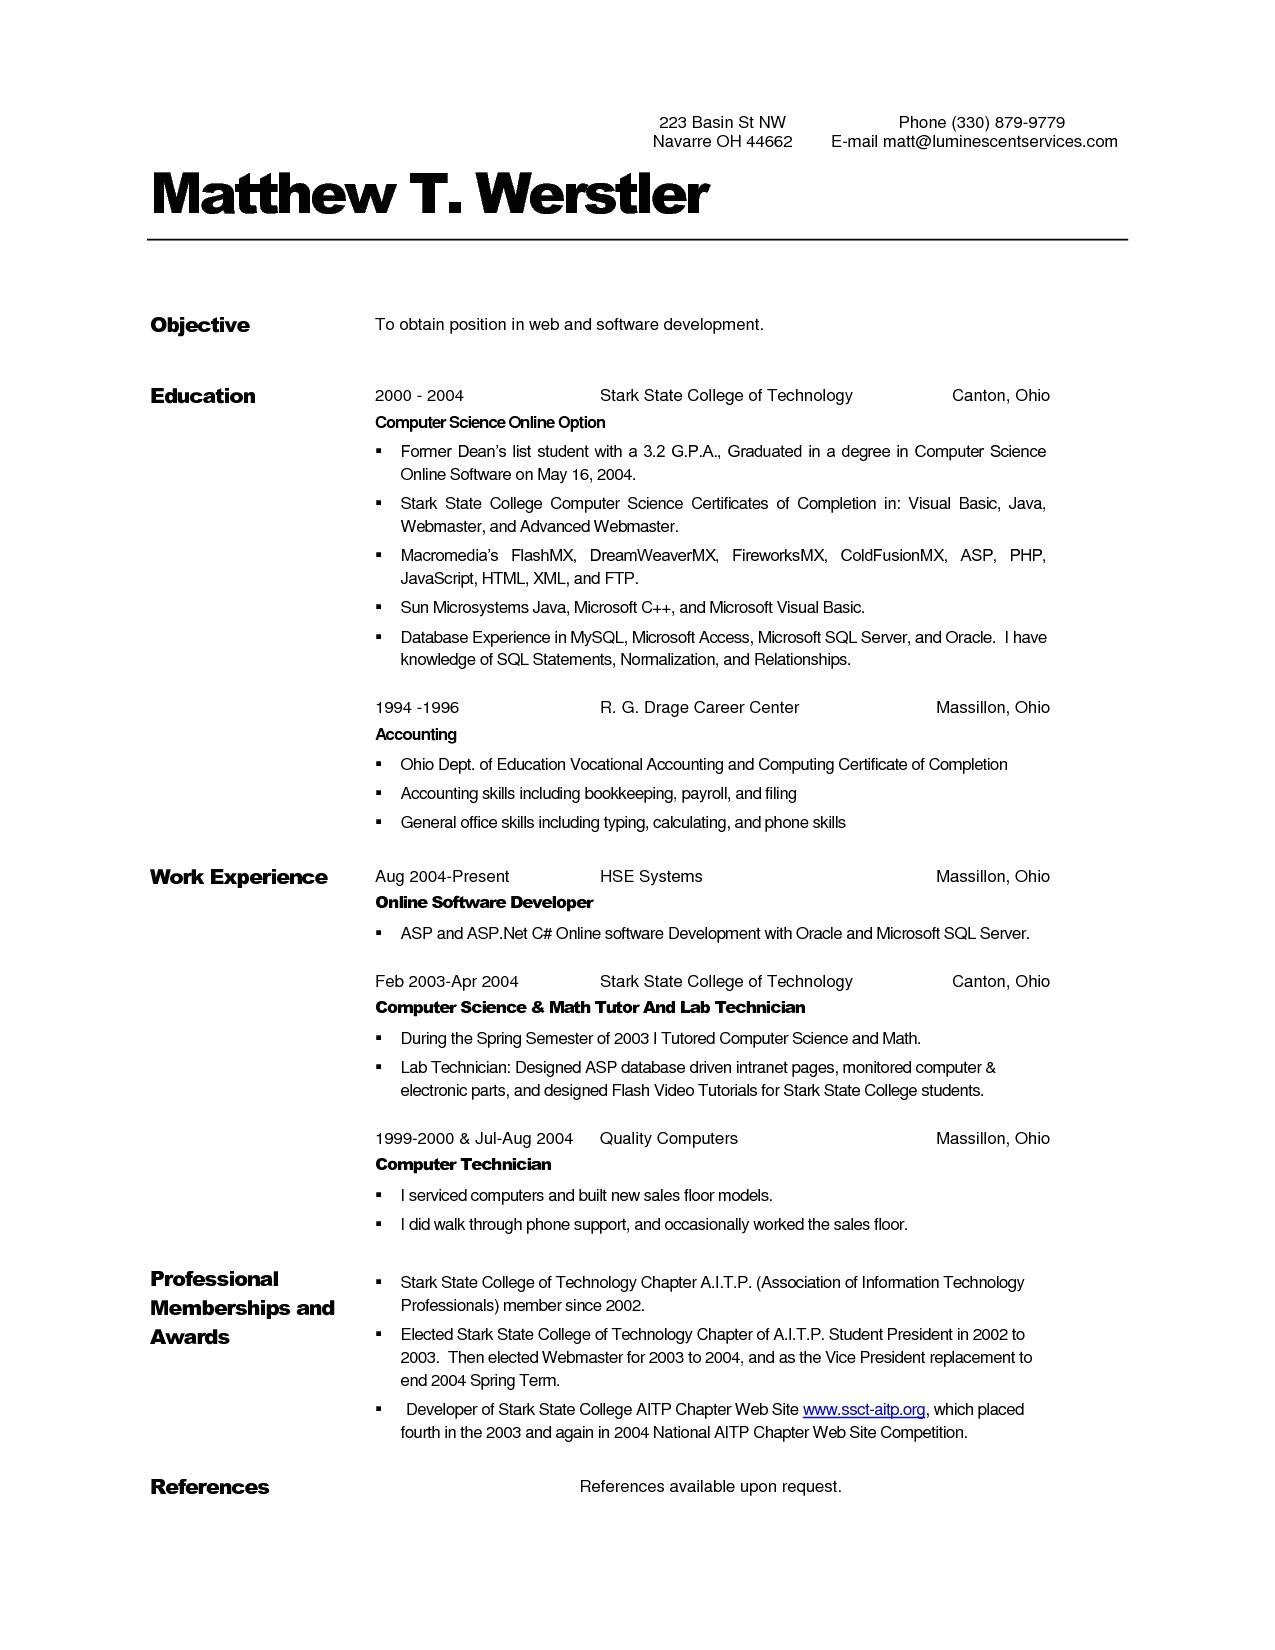 Sample Resume for Ojt Computer Science Students Sample Resume for Ojt Computer Science Students Lovely